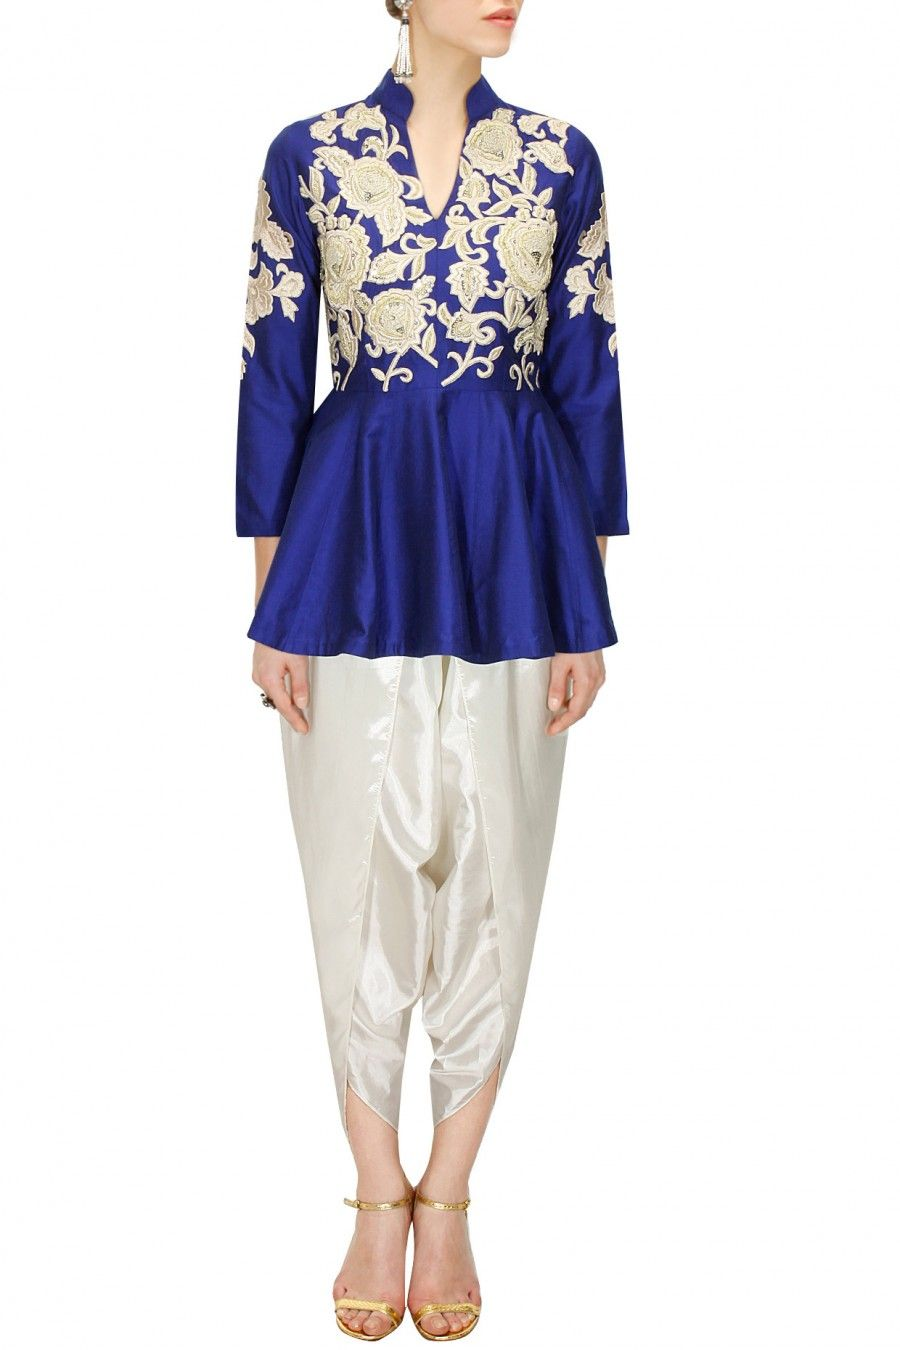 40103f651 Blue dabka embroidered peplum kurta with dhoti pants available only at Pernia's  Pop-Up Shop.